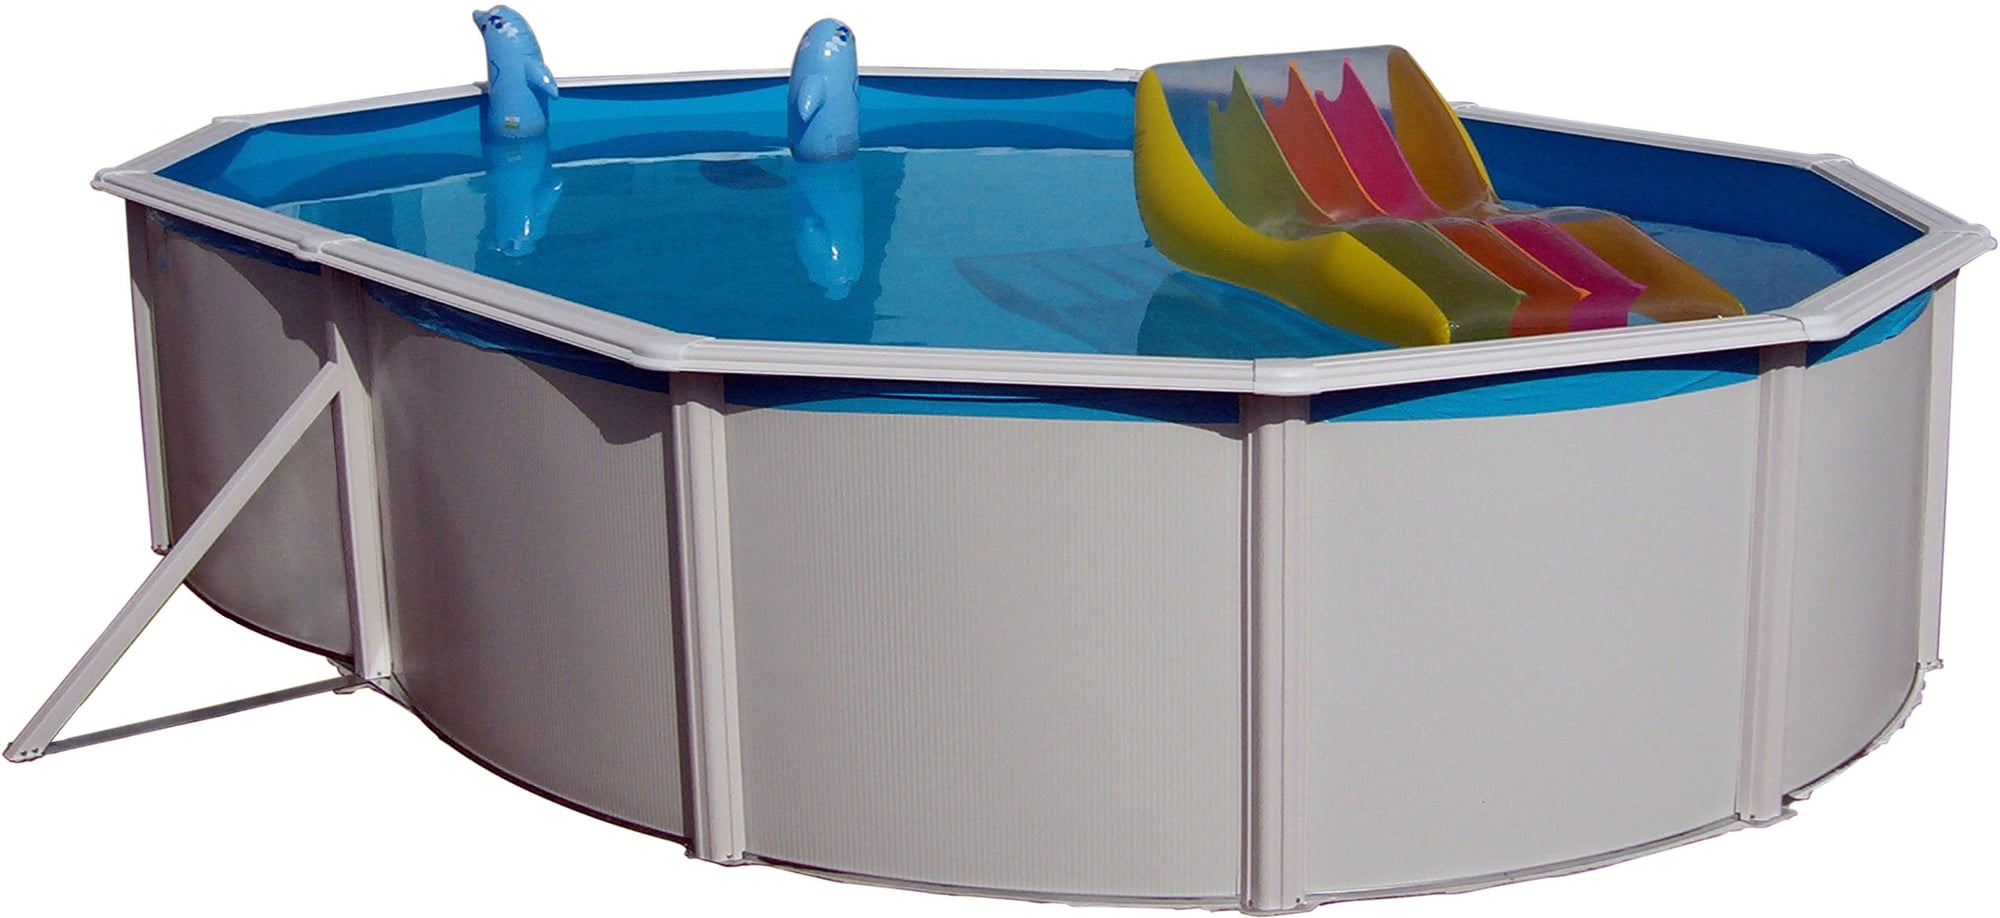 Pool Ohne Filteranlage Nuovo Pool Deluxe Oval 730 X 366 X 120 Cm